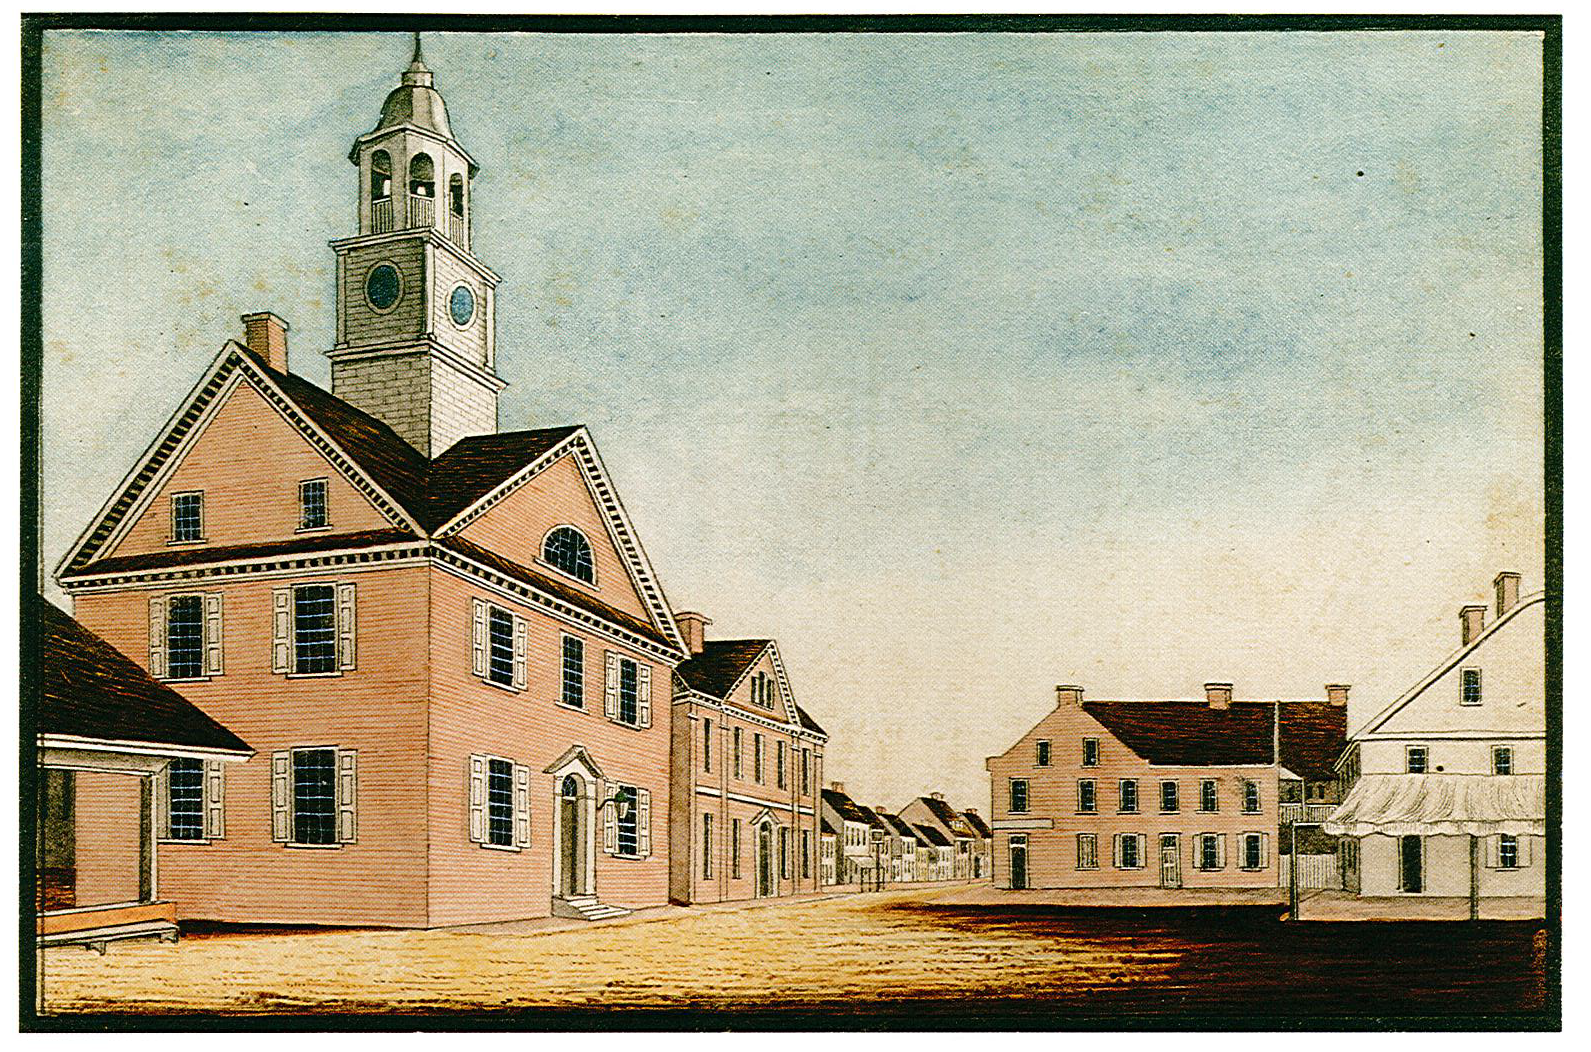 1830 painting by local artist, William Wagner, reflecting the 1815 renovation. Original location in Centre Square at the intersection of Market Street and George Street.